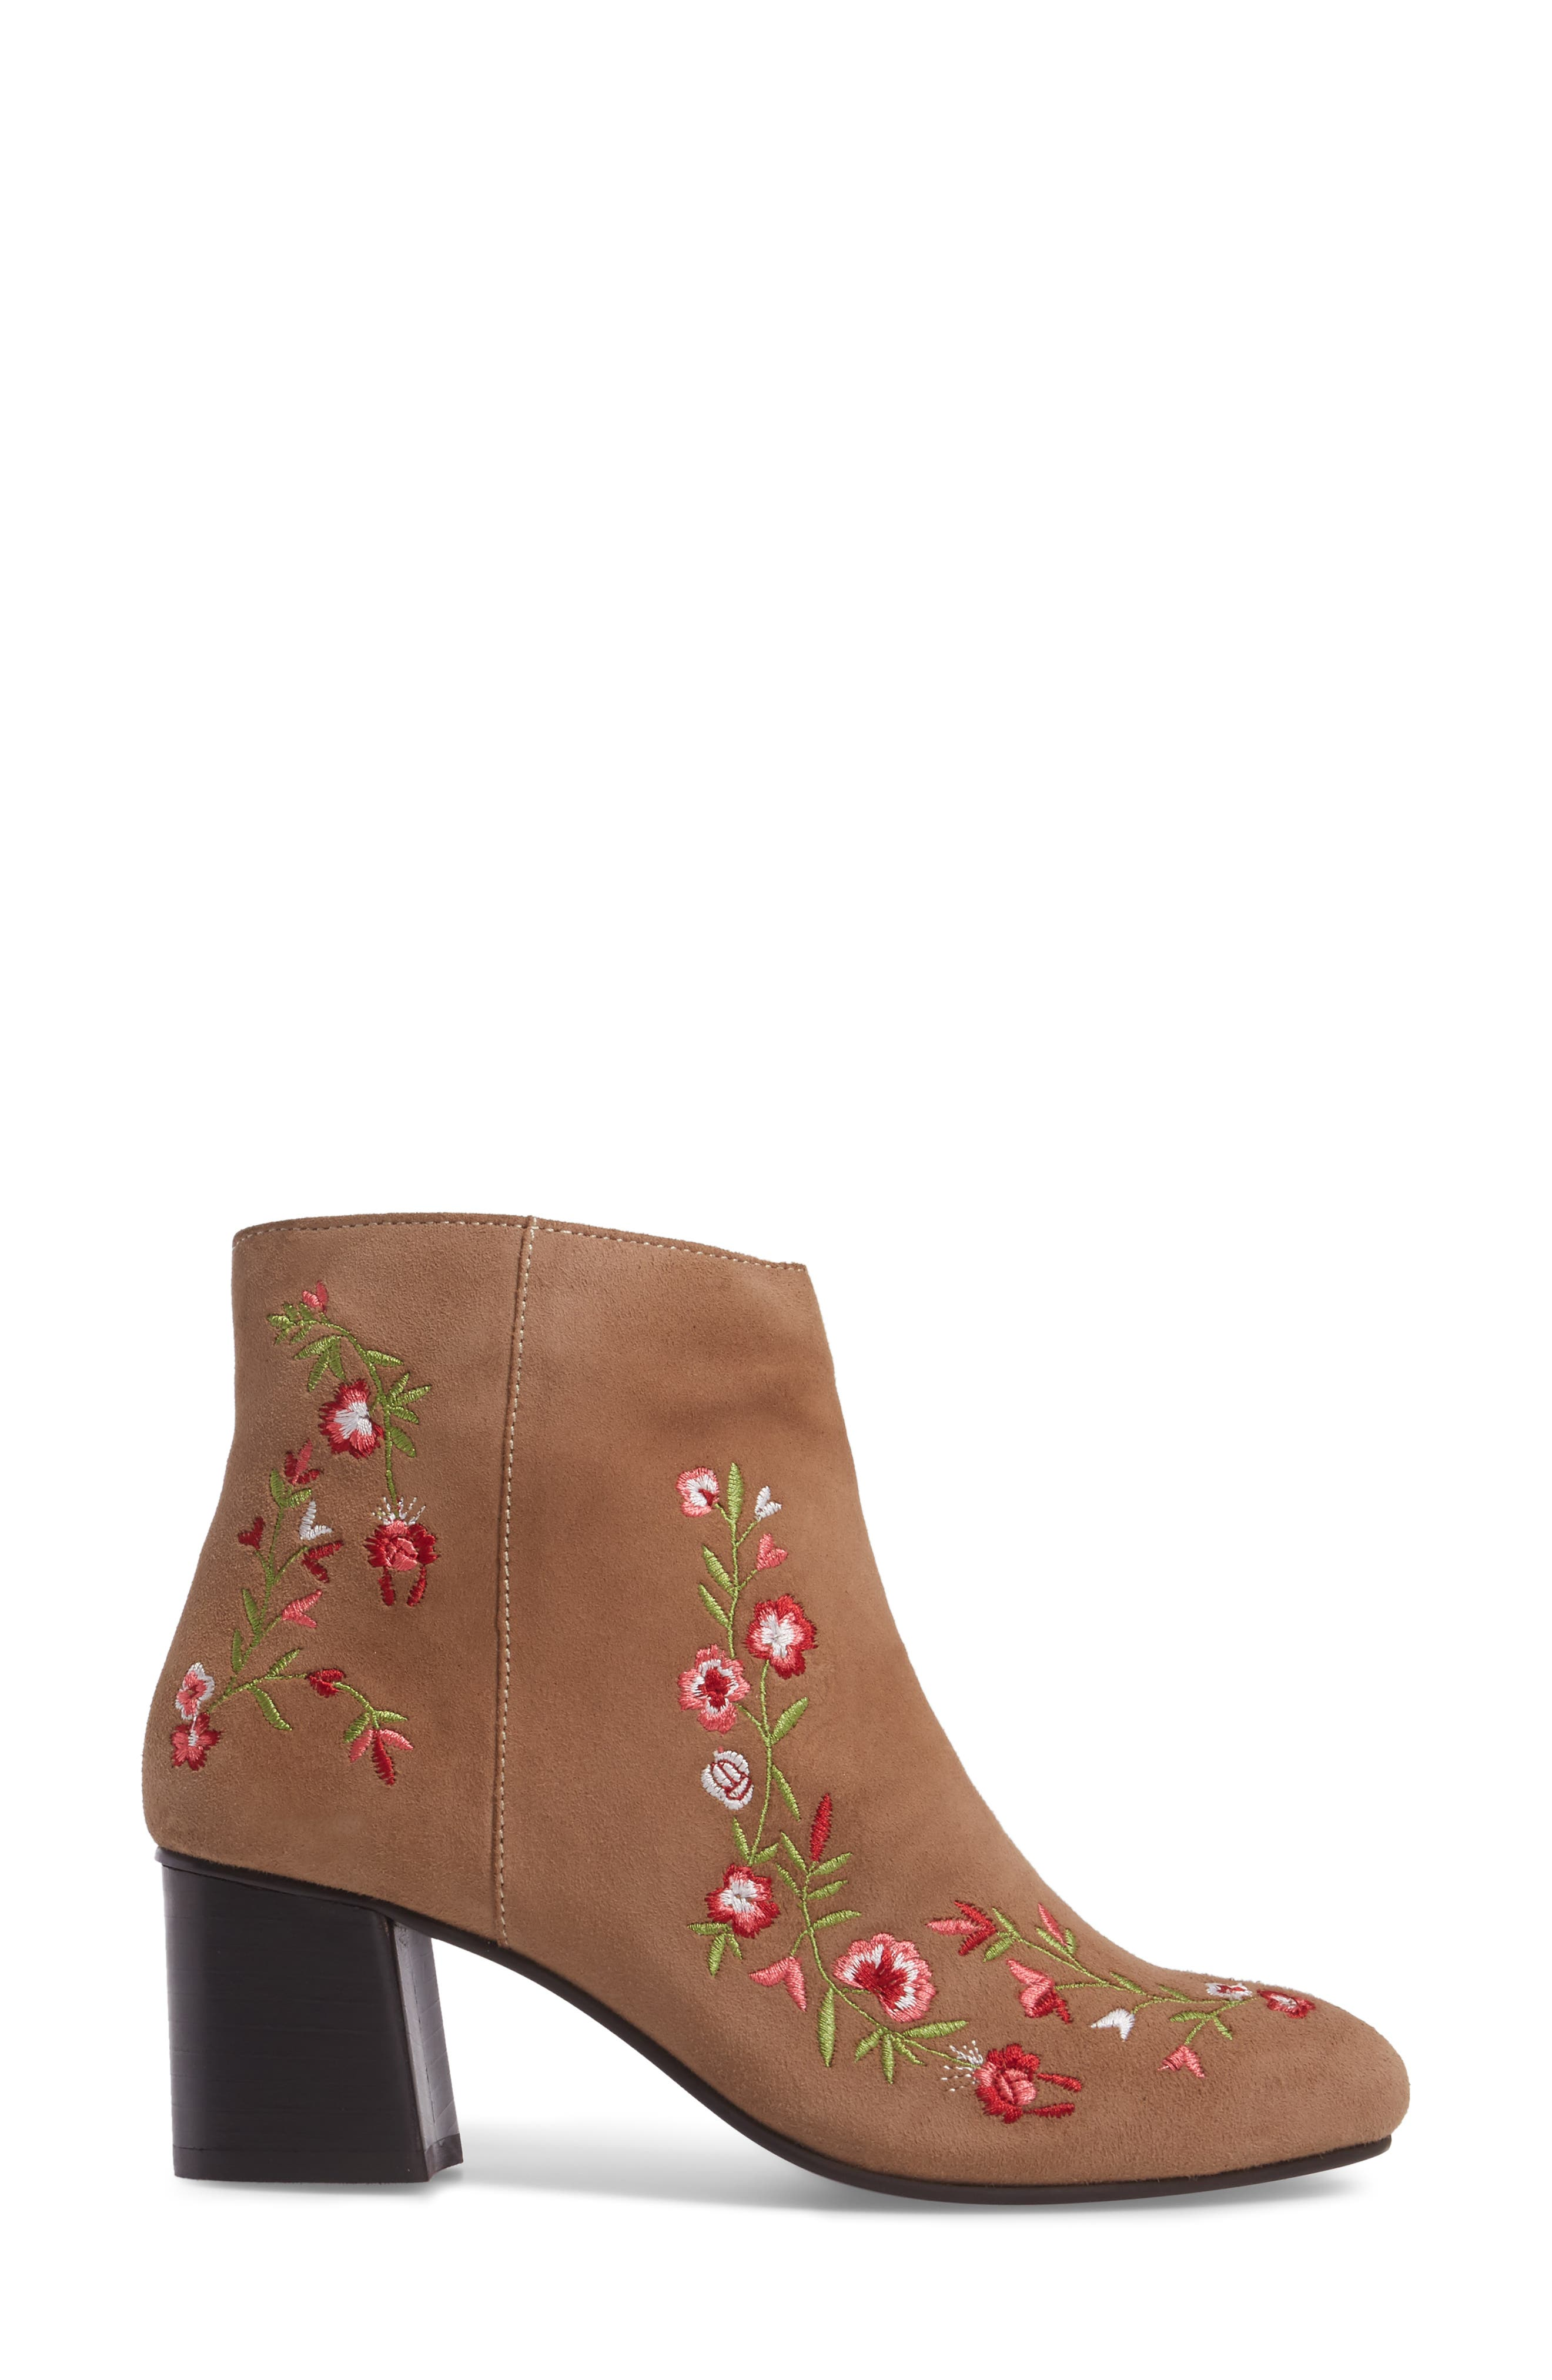 Veronaa Embroidered Bootie,                             Alternate thumbnail 3, color,                             Tan Suede